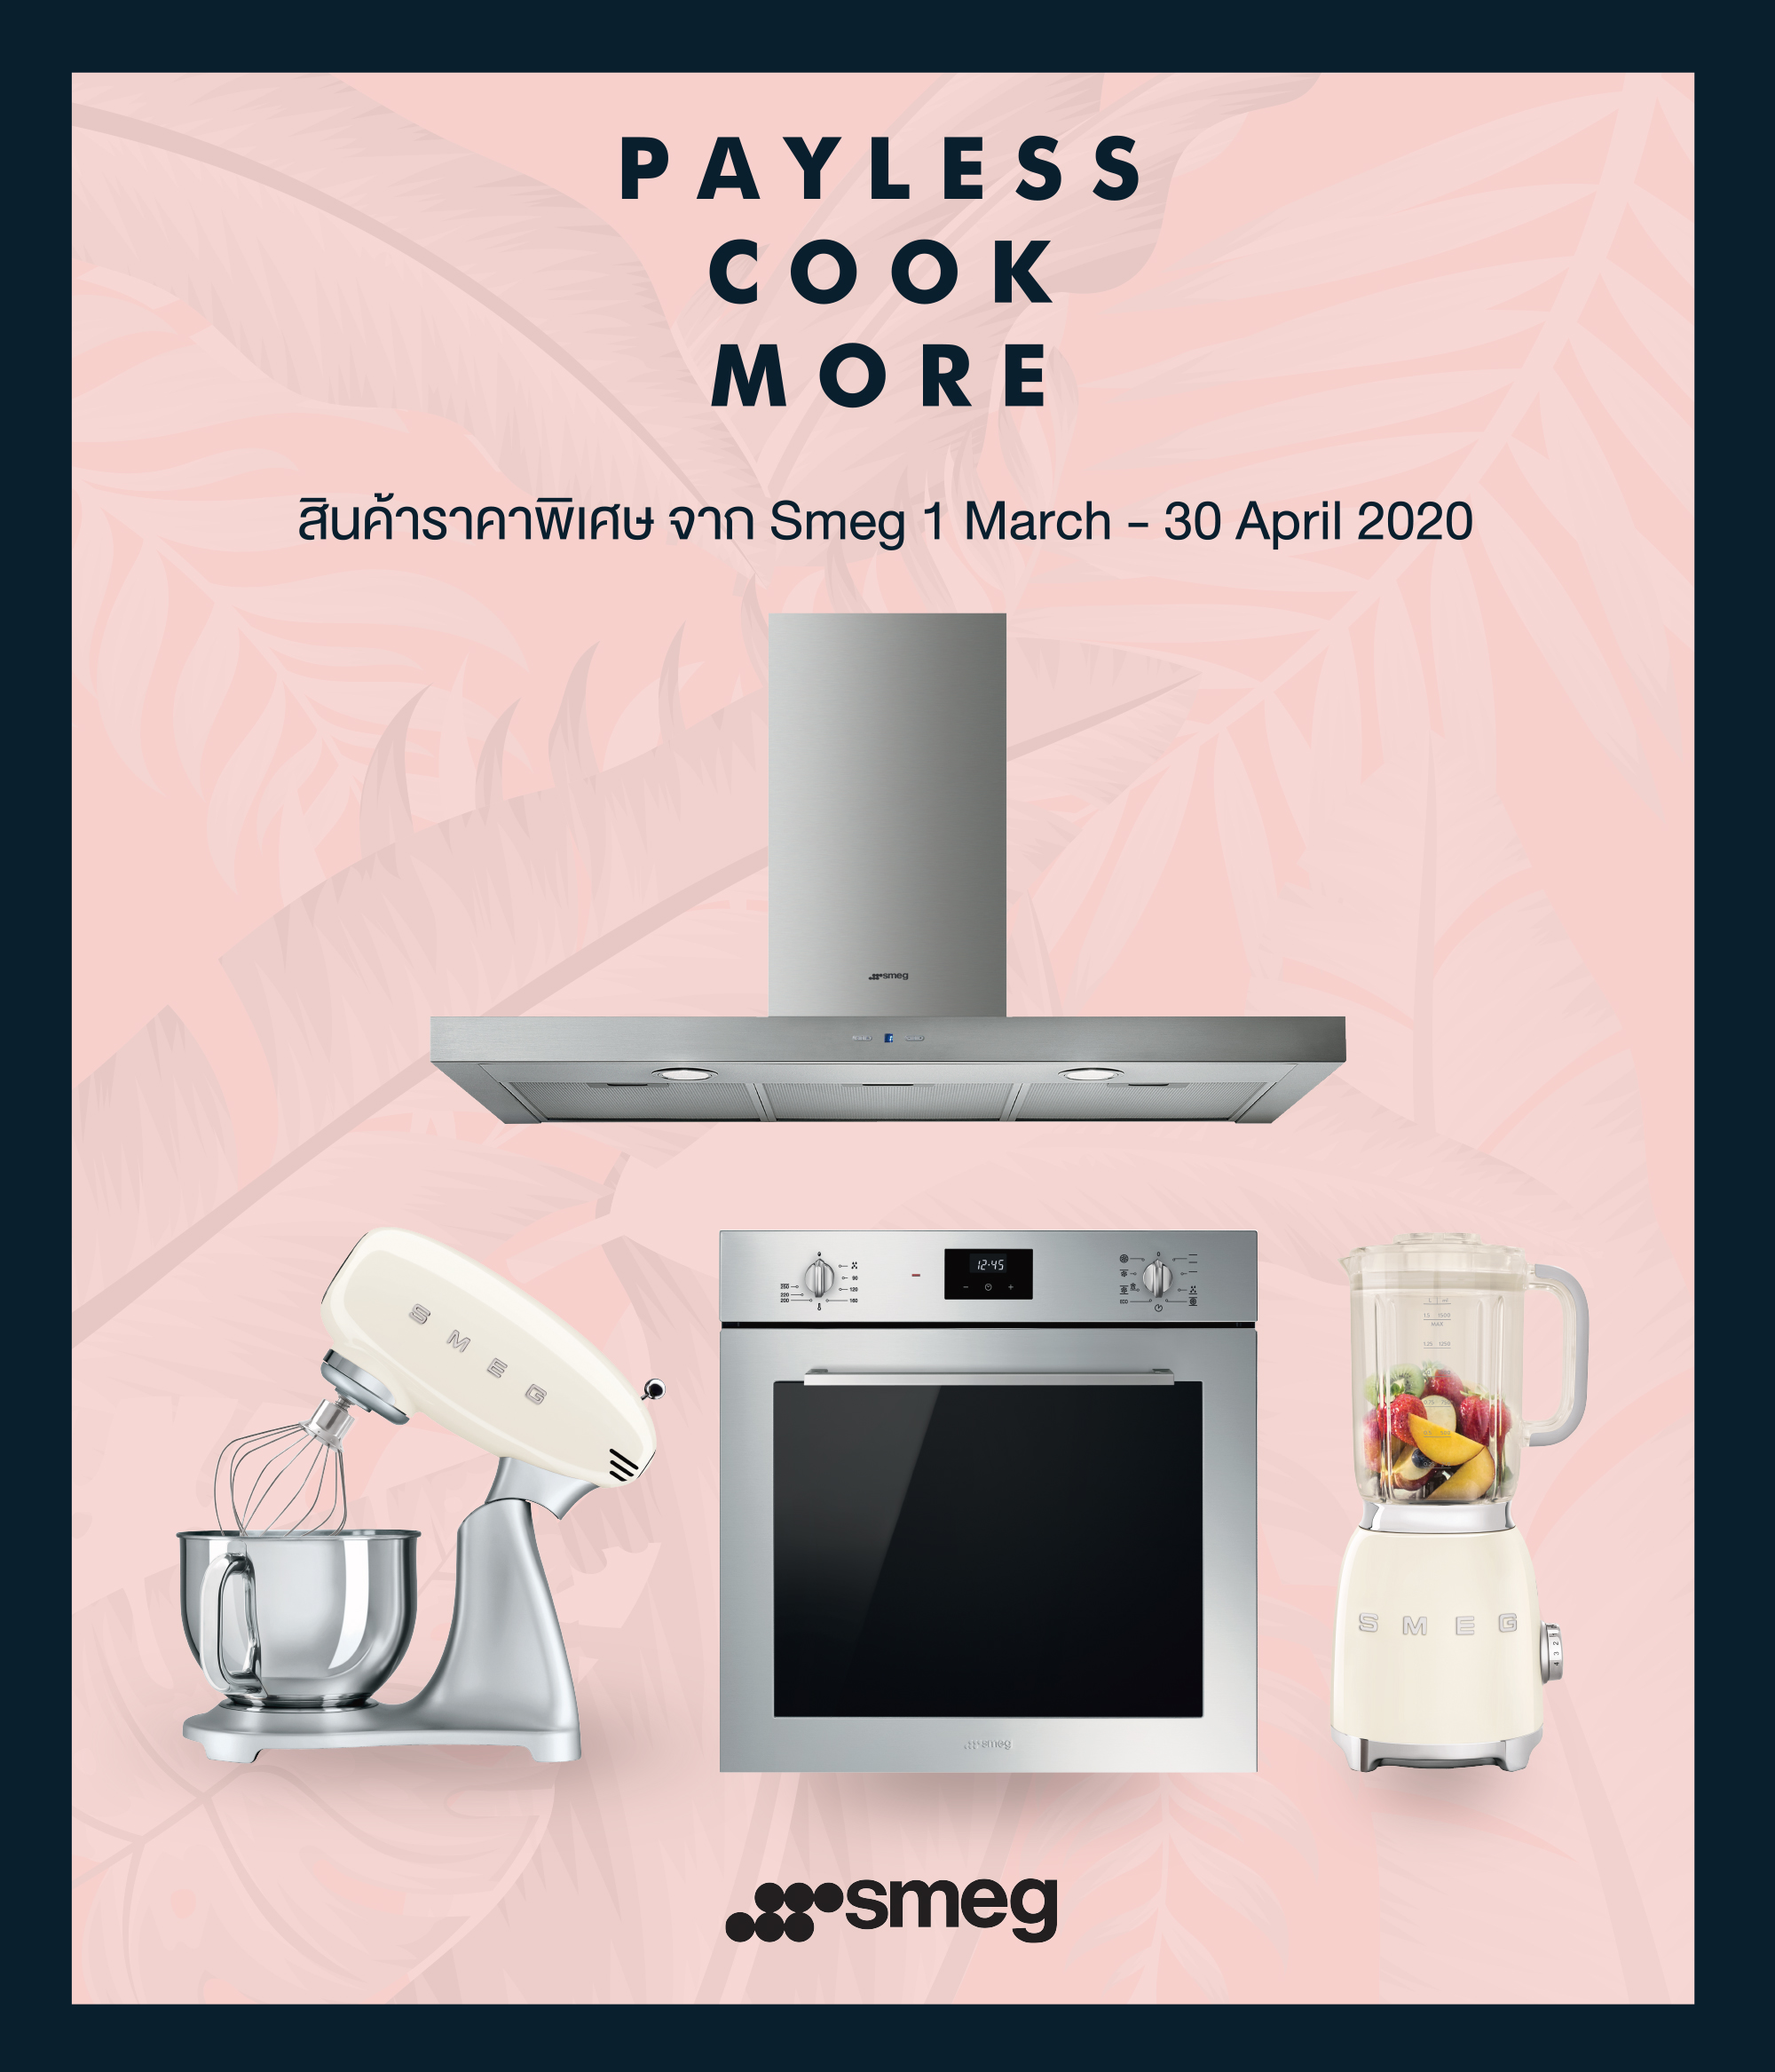 Smeg March - April 2020 Promotion